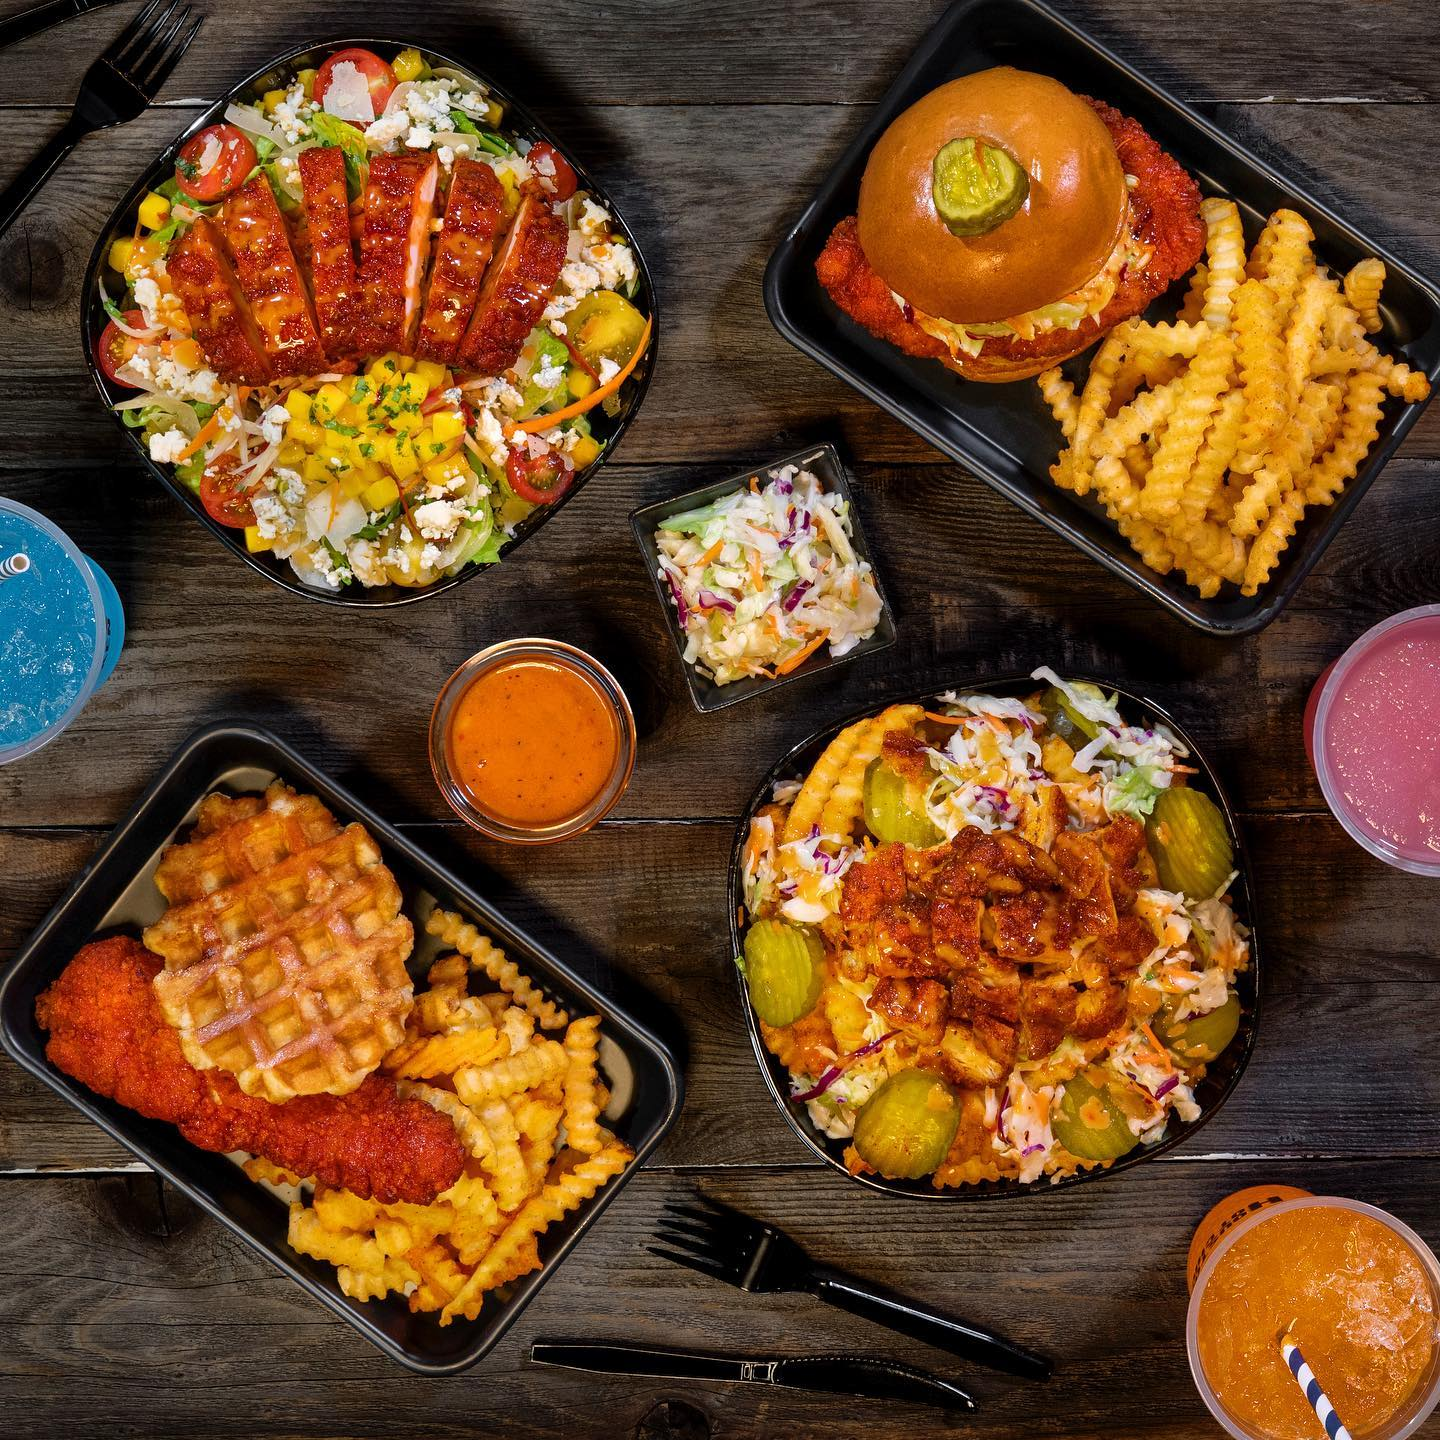 Nashville hot chicken with waffles, in a salad, as a sandwich, and in a bowl, shot from overhead.